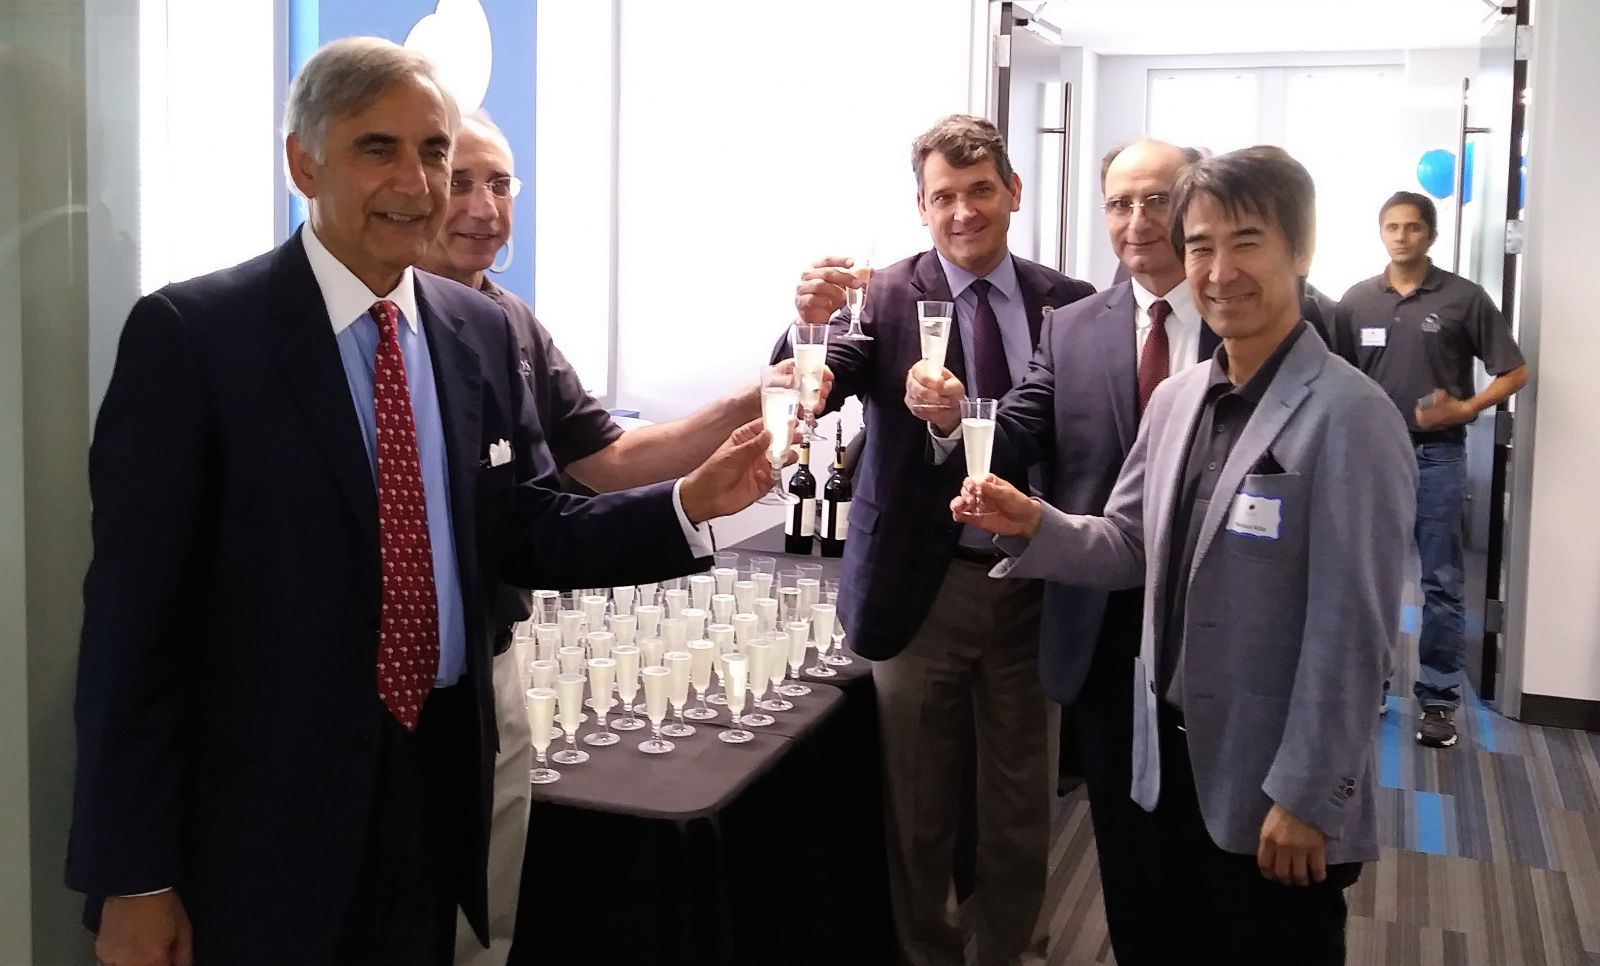 From left: University of South Carolina President Harris Pastides, Jerry Melnick, president and CEO of SIOS Technology, Bill Kirkland, executive director of USC's Office of Economic Engagement, Hossein Haj-Hariri, dean of the College of Engineering and Computing and Nobuo Kita, chairman of Board of Directors for SIOS Technology, share a glass of champagne at the ribbon cutting of SIOS Techonlogy's new research and development center on the campus of USC.